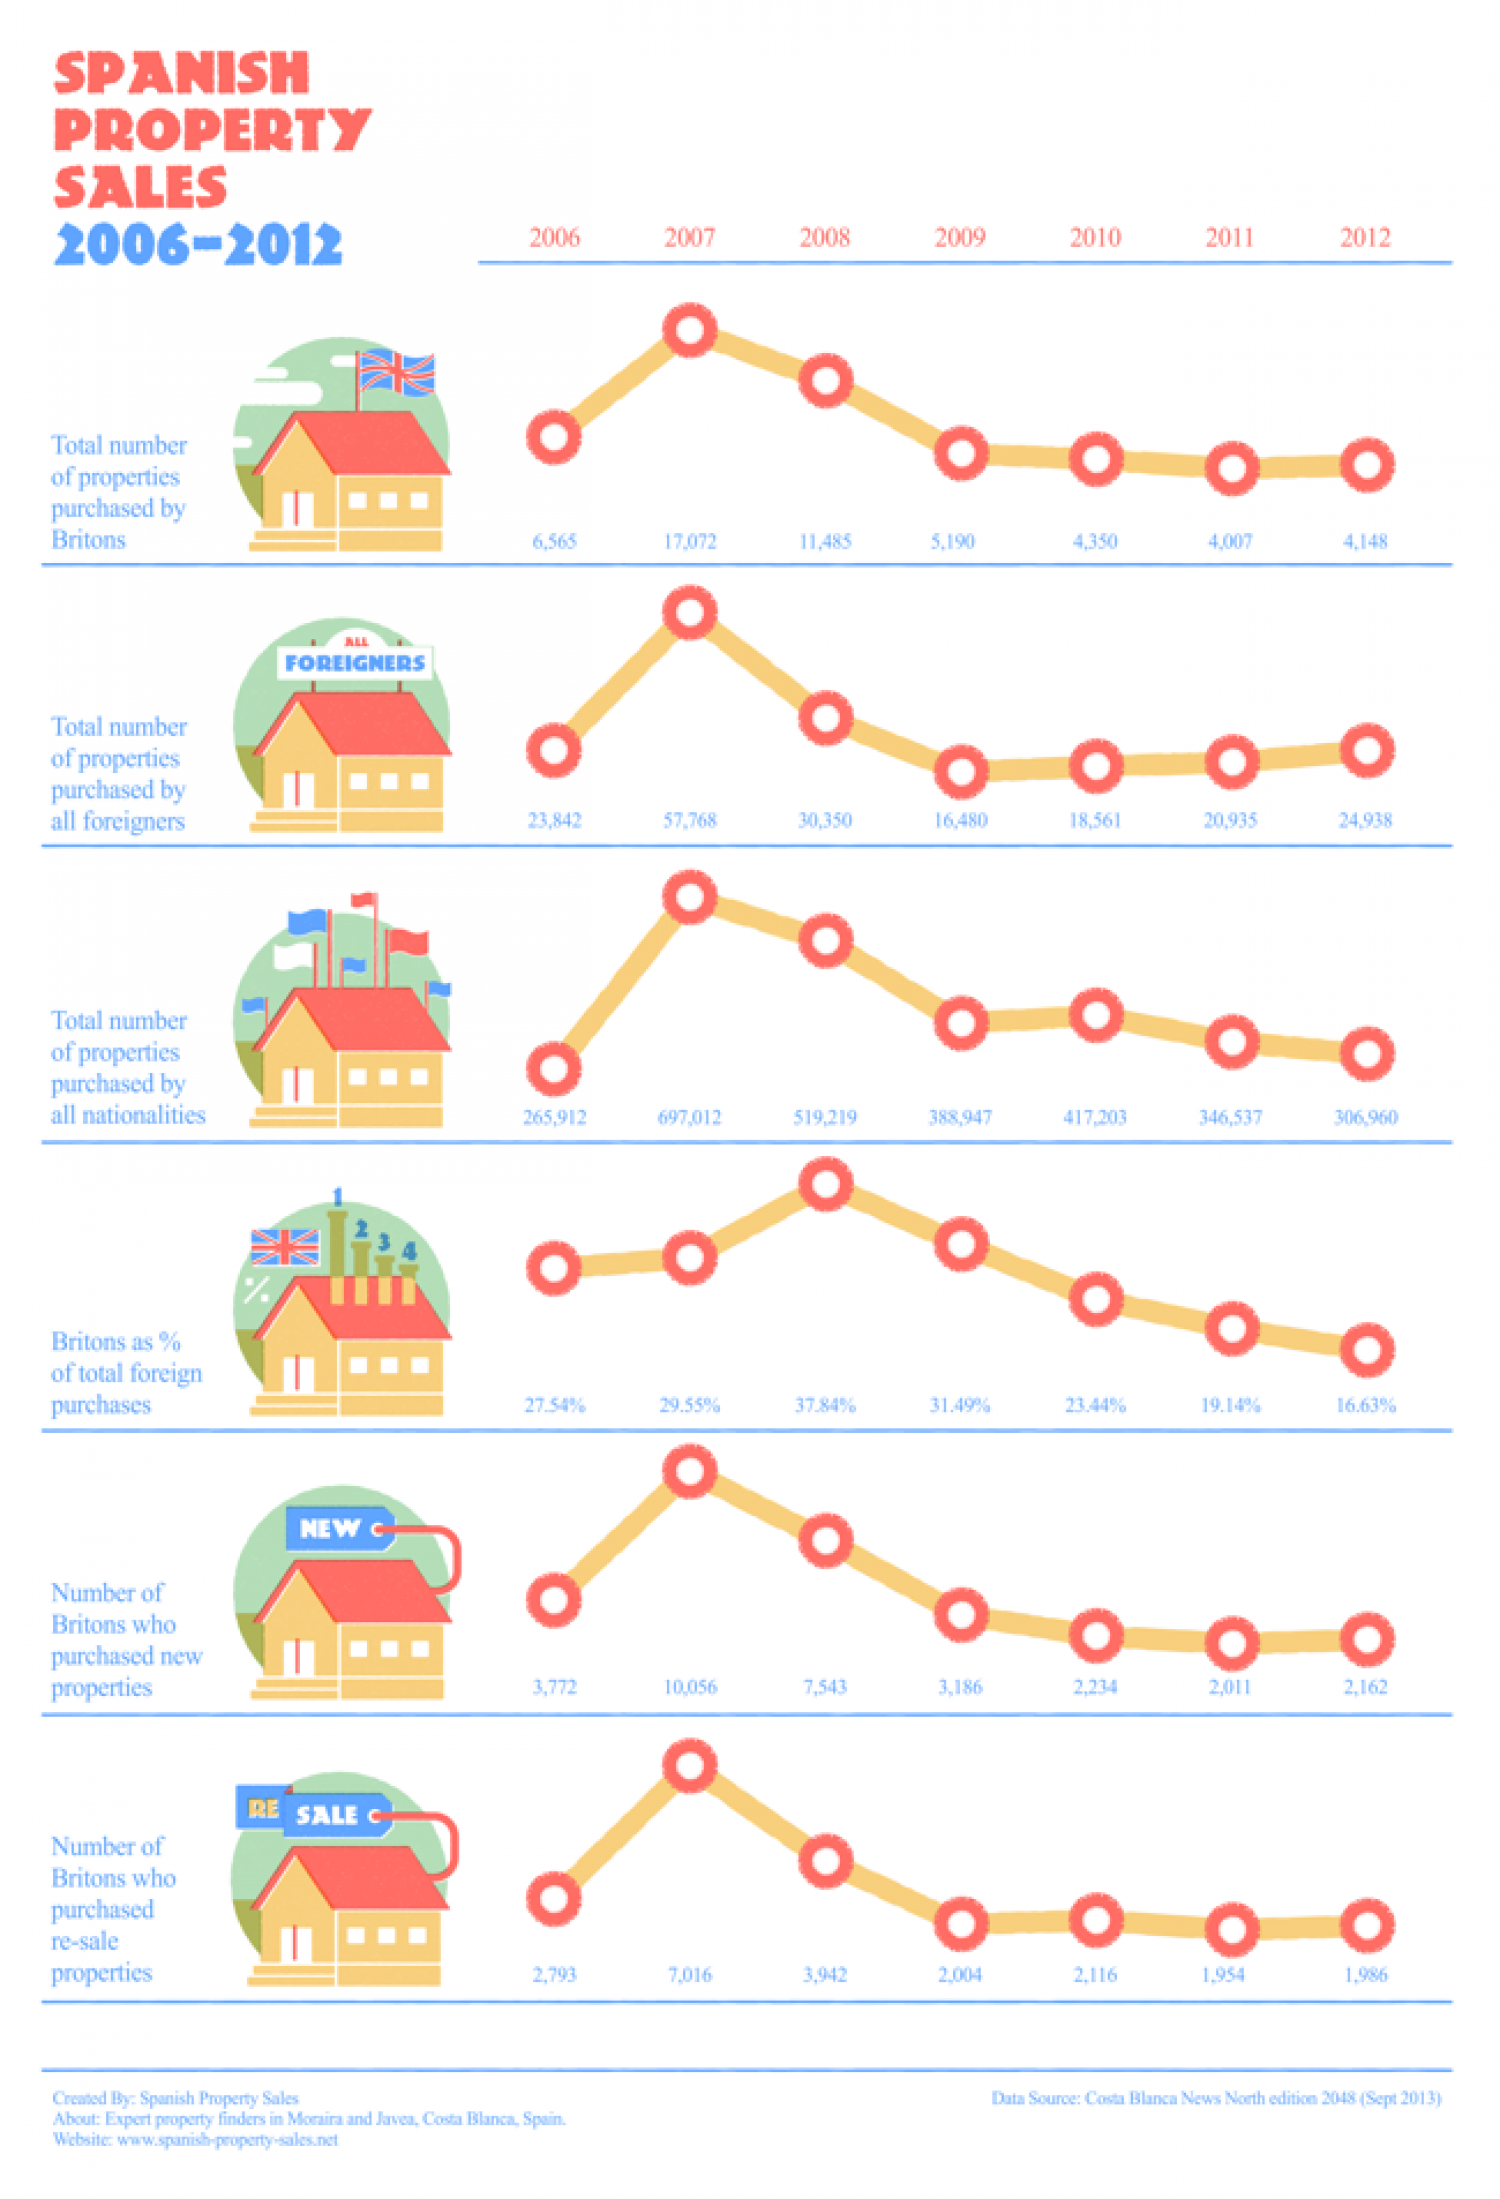 Spanish Property Sales 2006 to 2012 Infographic